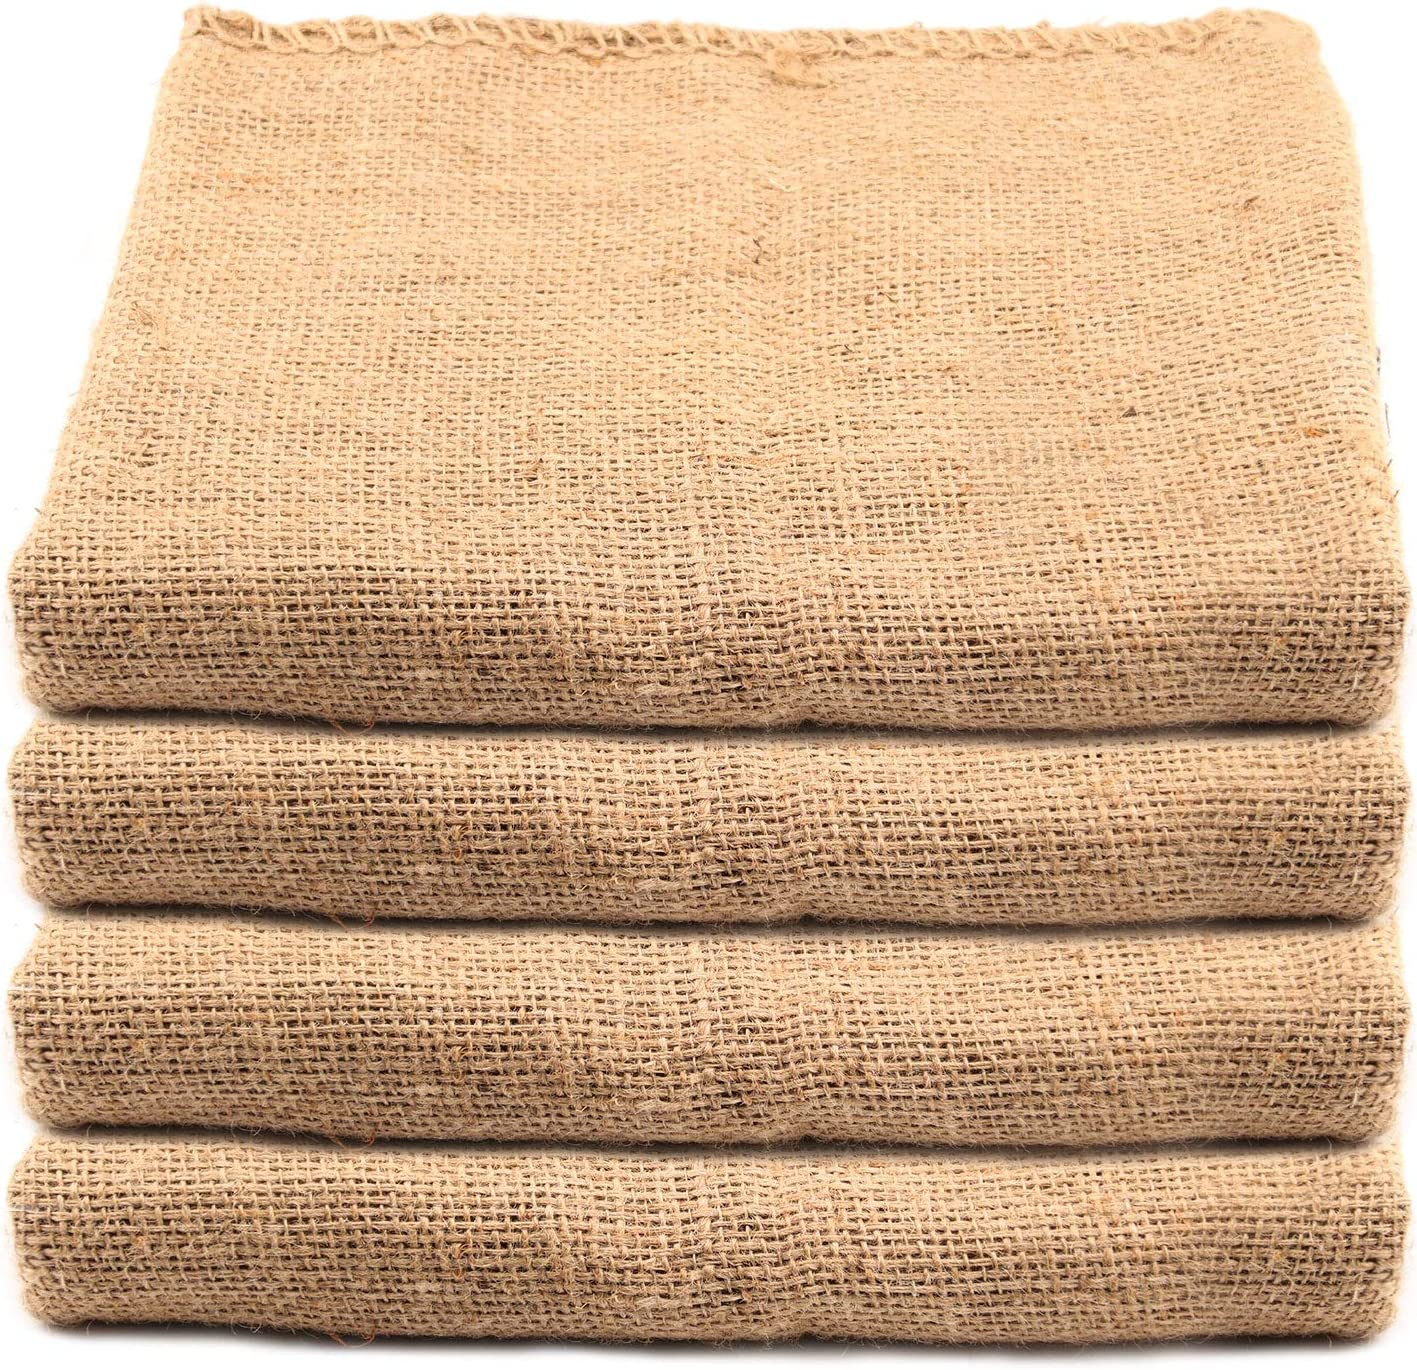 KEILEOHO 8 Pack 40 X 24 Inch Burlap Bags, Large Food Grade Burlap Sacks for Gardening, Planting Growing Bags, Sack Race Bags for School Racing Game, Christmas Party Game